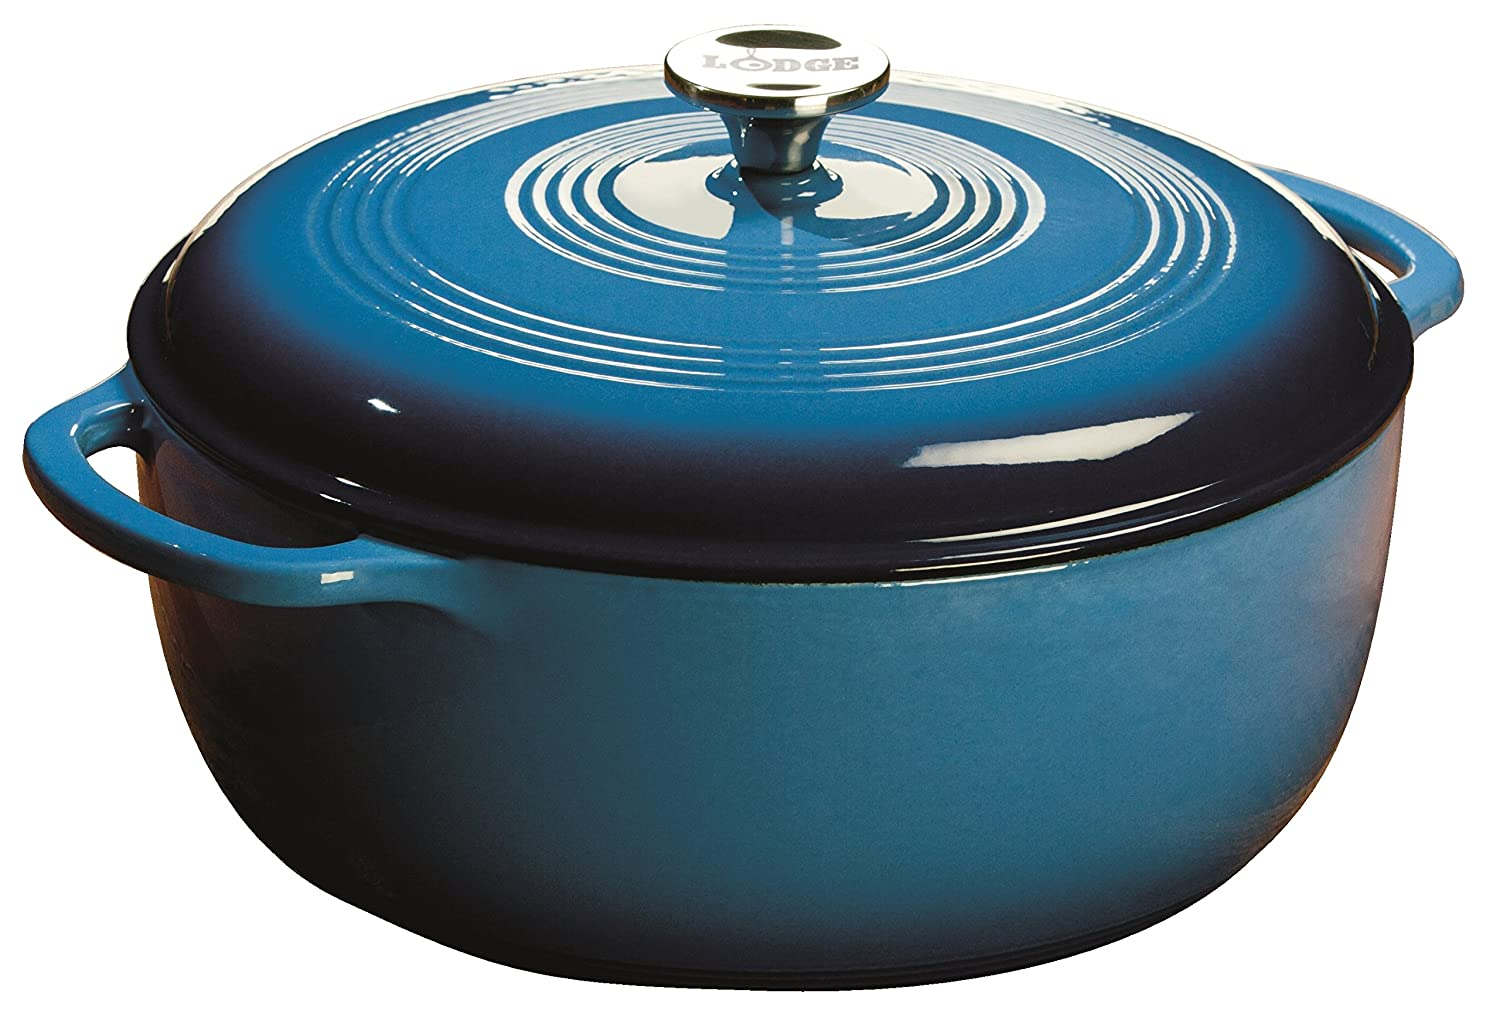 Lodge 7.5 Quart Enameled Cast Iron Dutch Oven. XL Blue Enamel Dutch Oven (Carribean Blue) - EC7D33